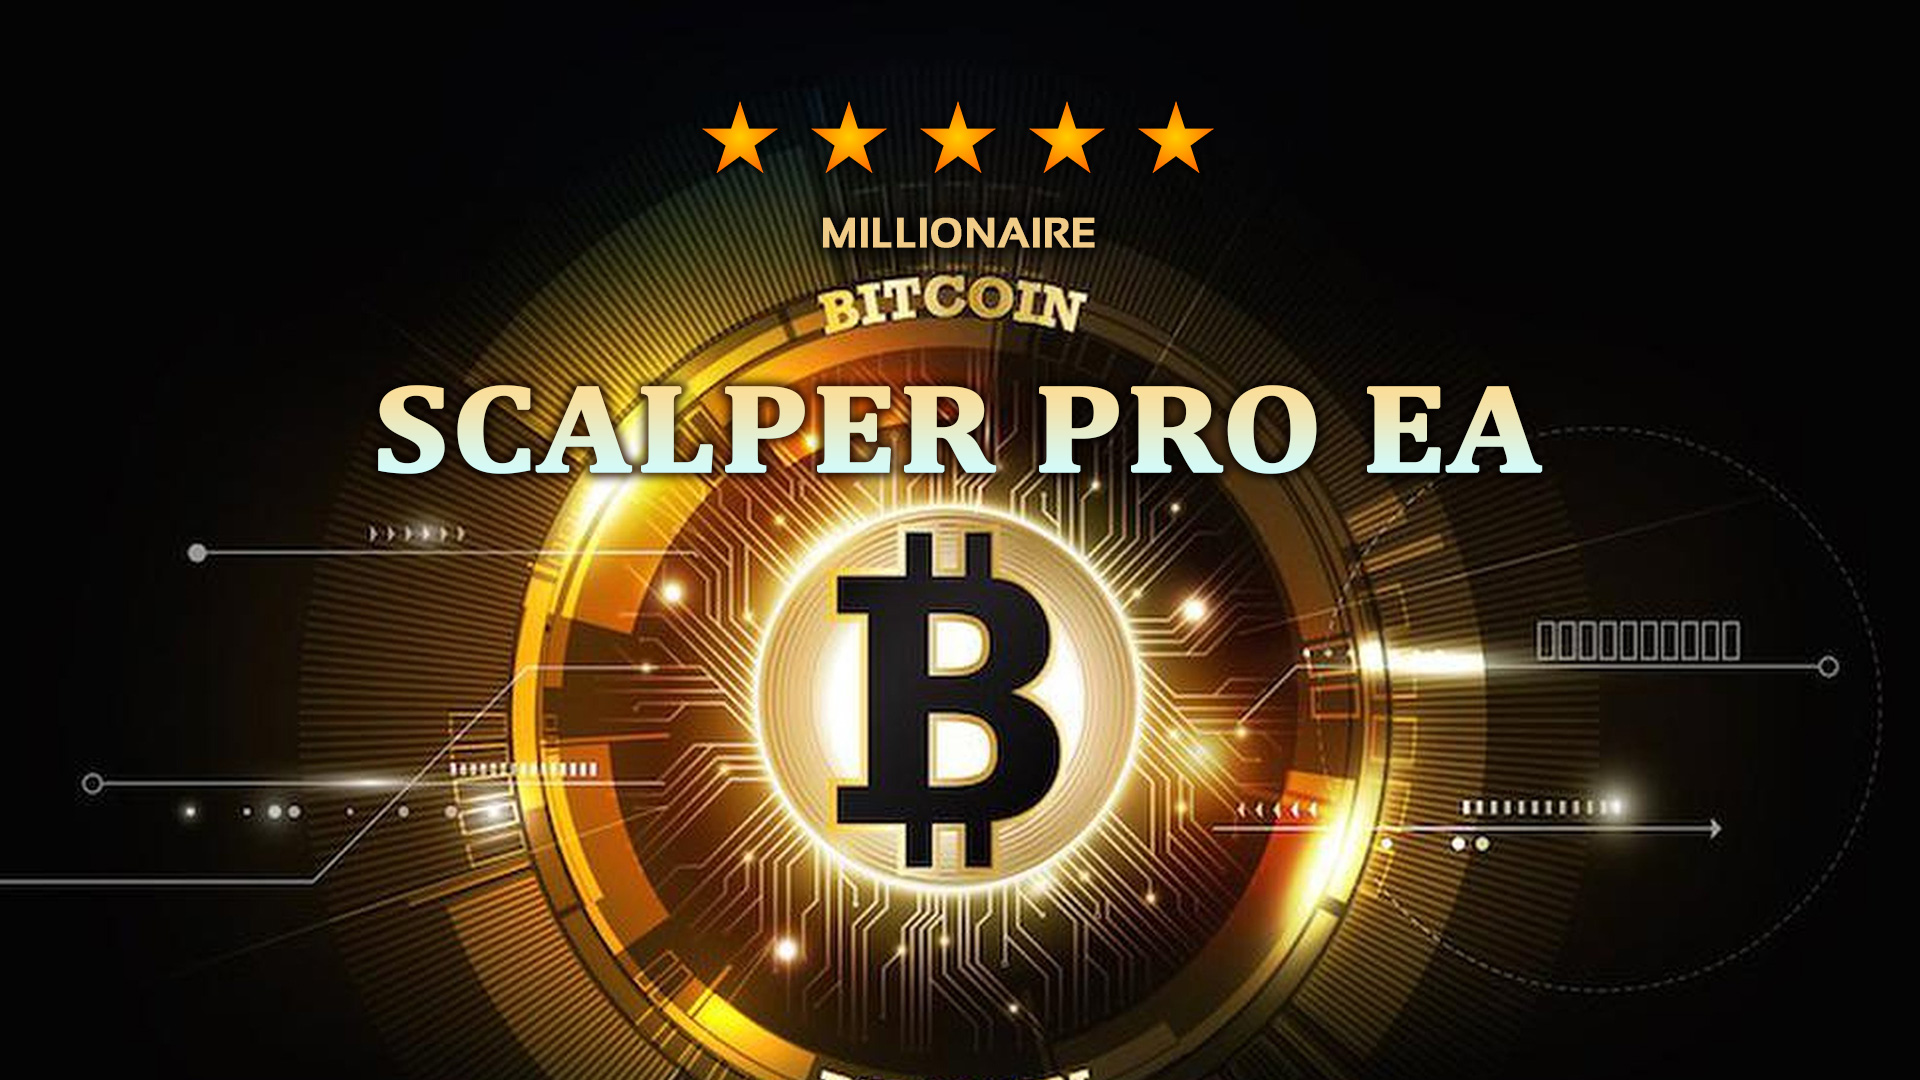 I will teach you how to get 5 Percent Daily Profit with Scalper Pro EA